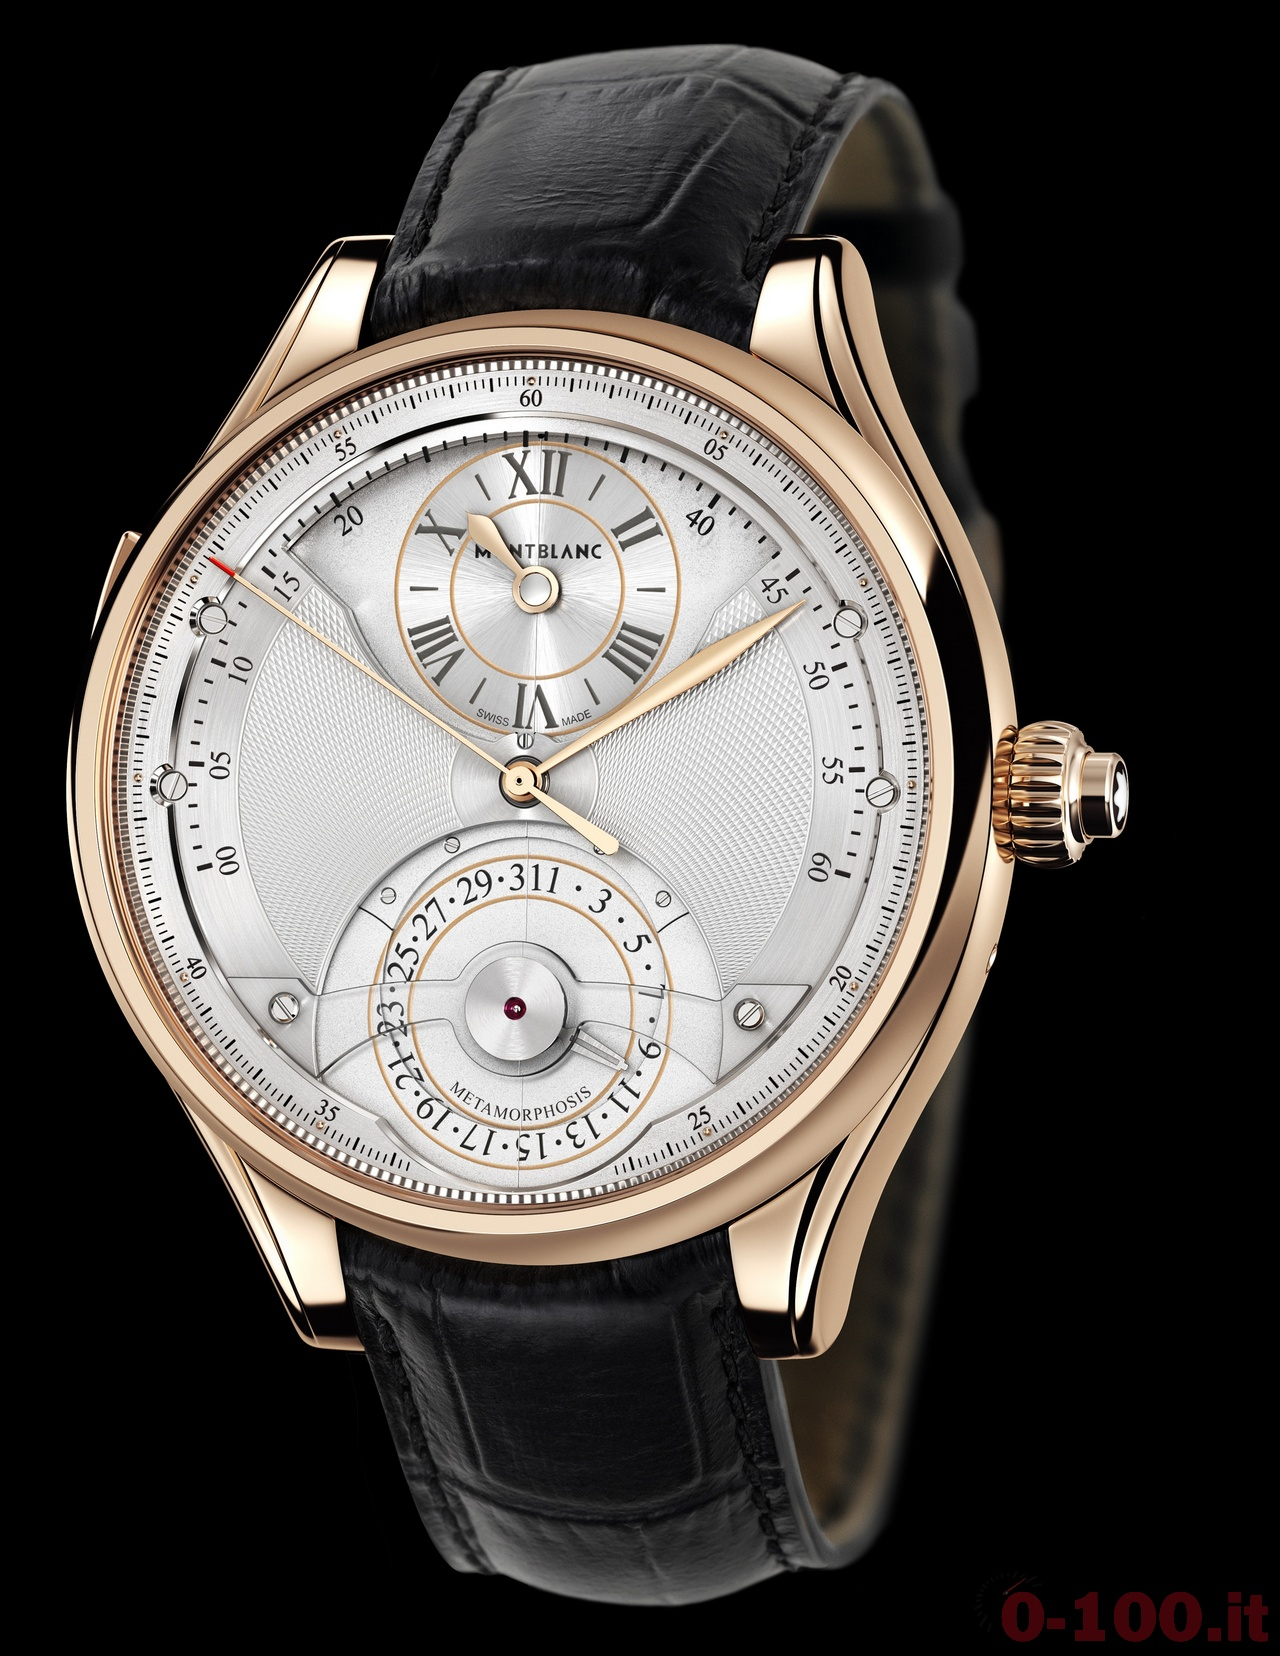 montblanc-metamorphosis-ii-ref-112442-limited-edition-0-100_8